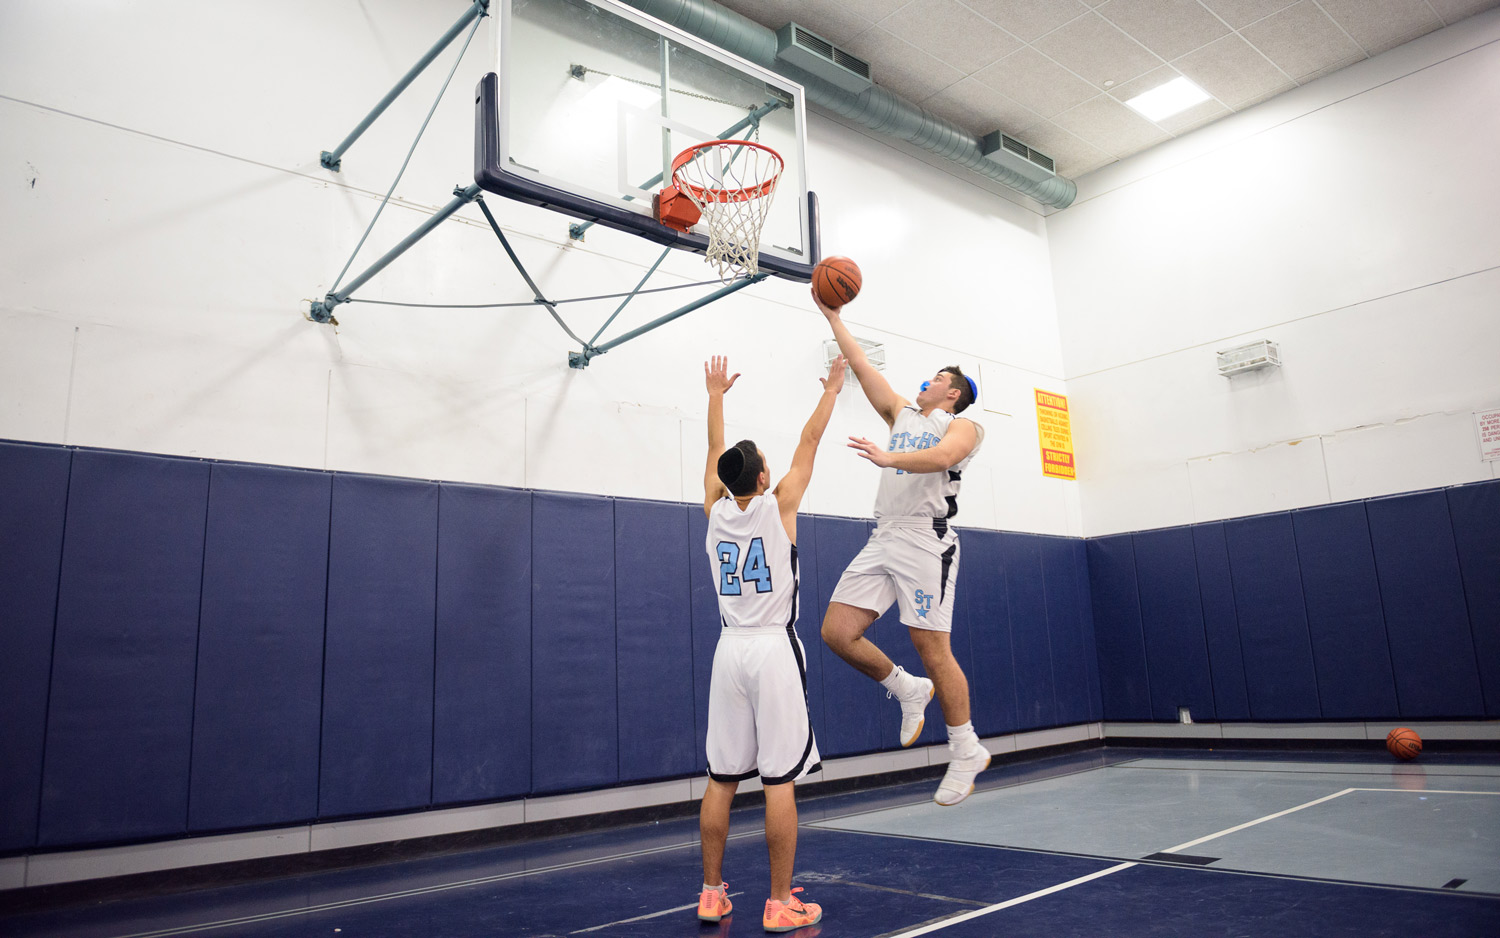 Boys High school Division students playing basketball